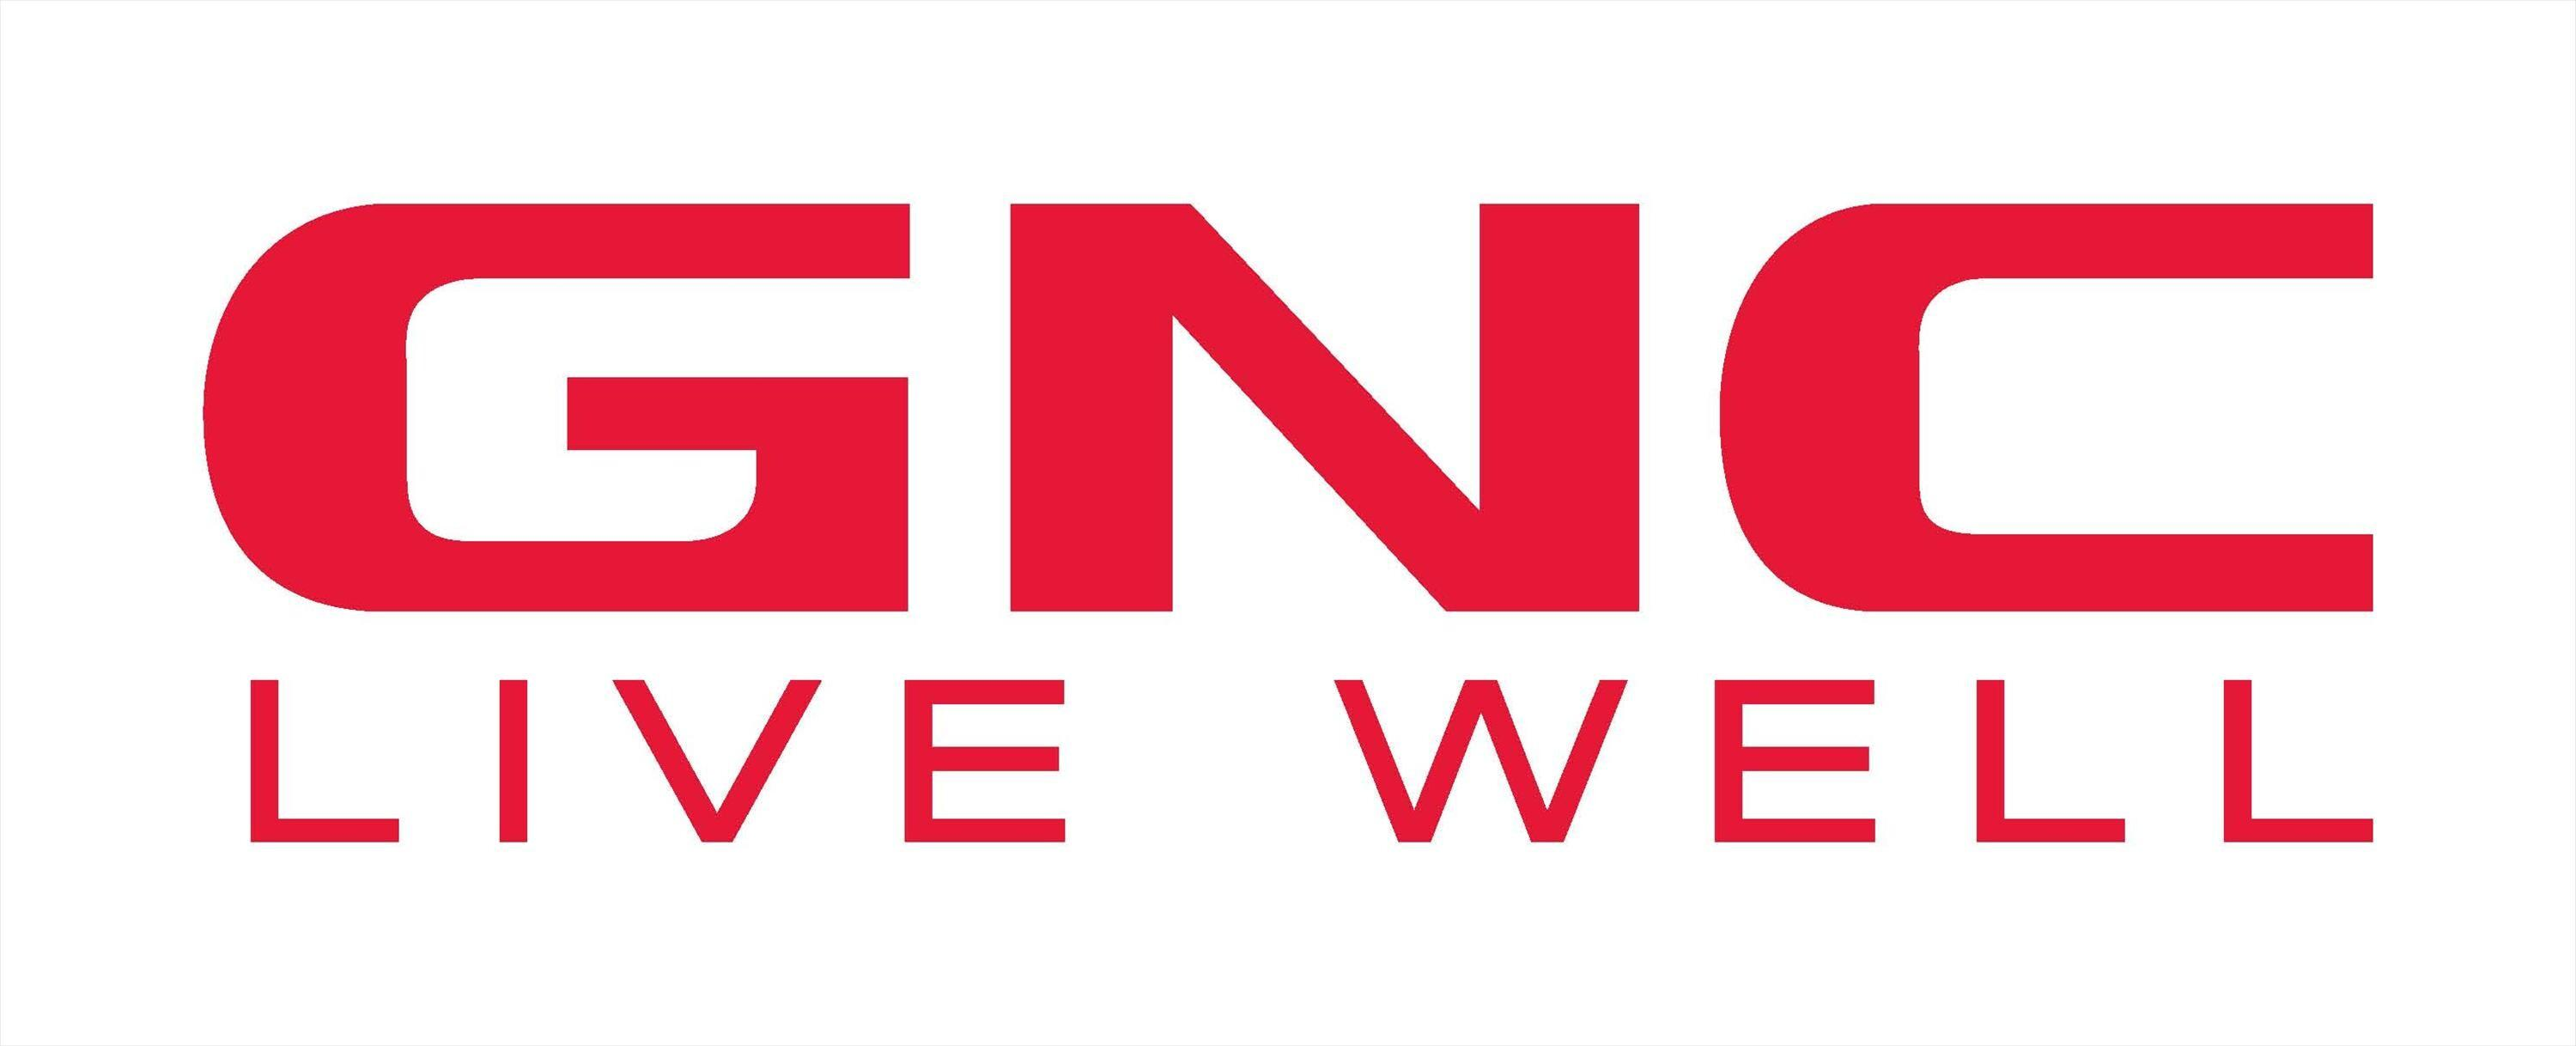 $9.99 Sale on Select Items @ GNC